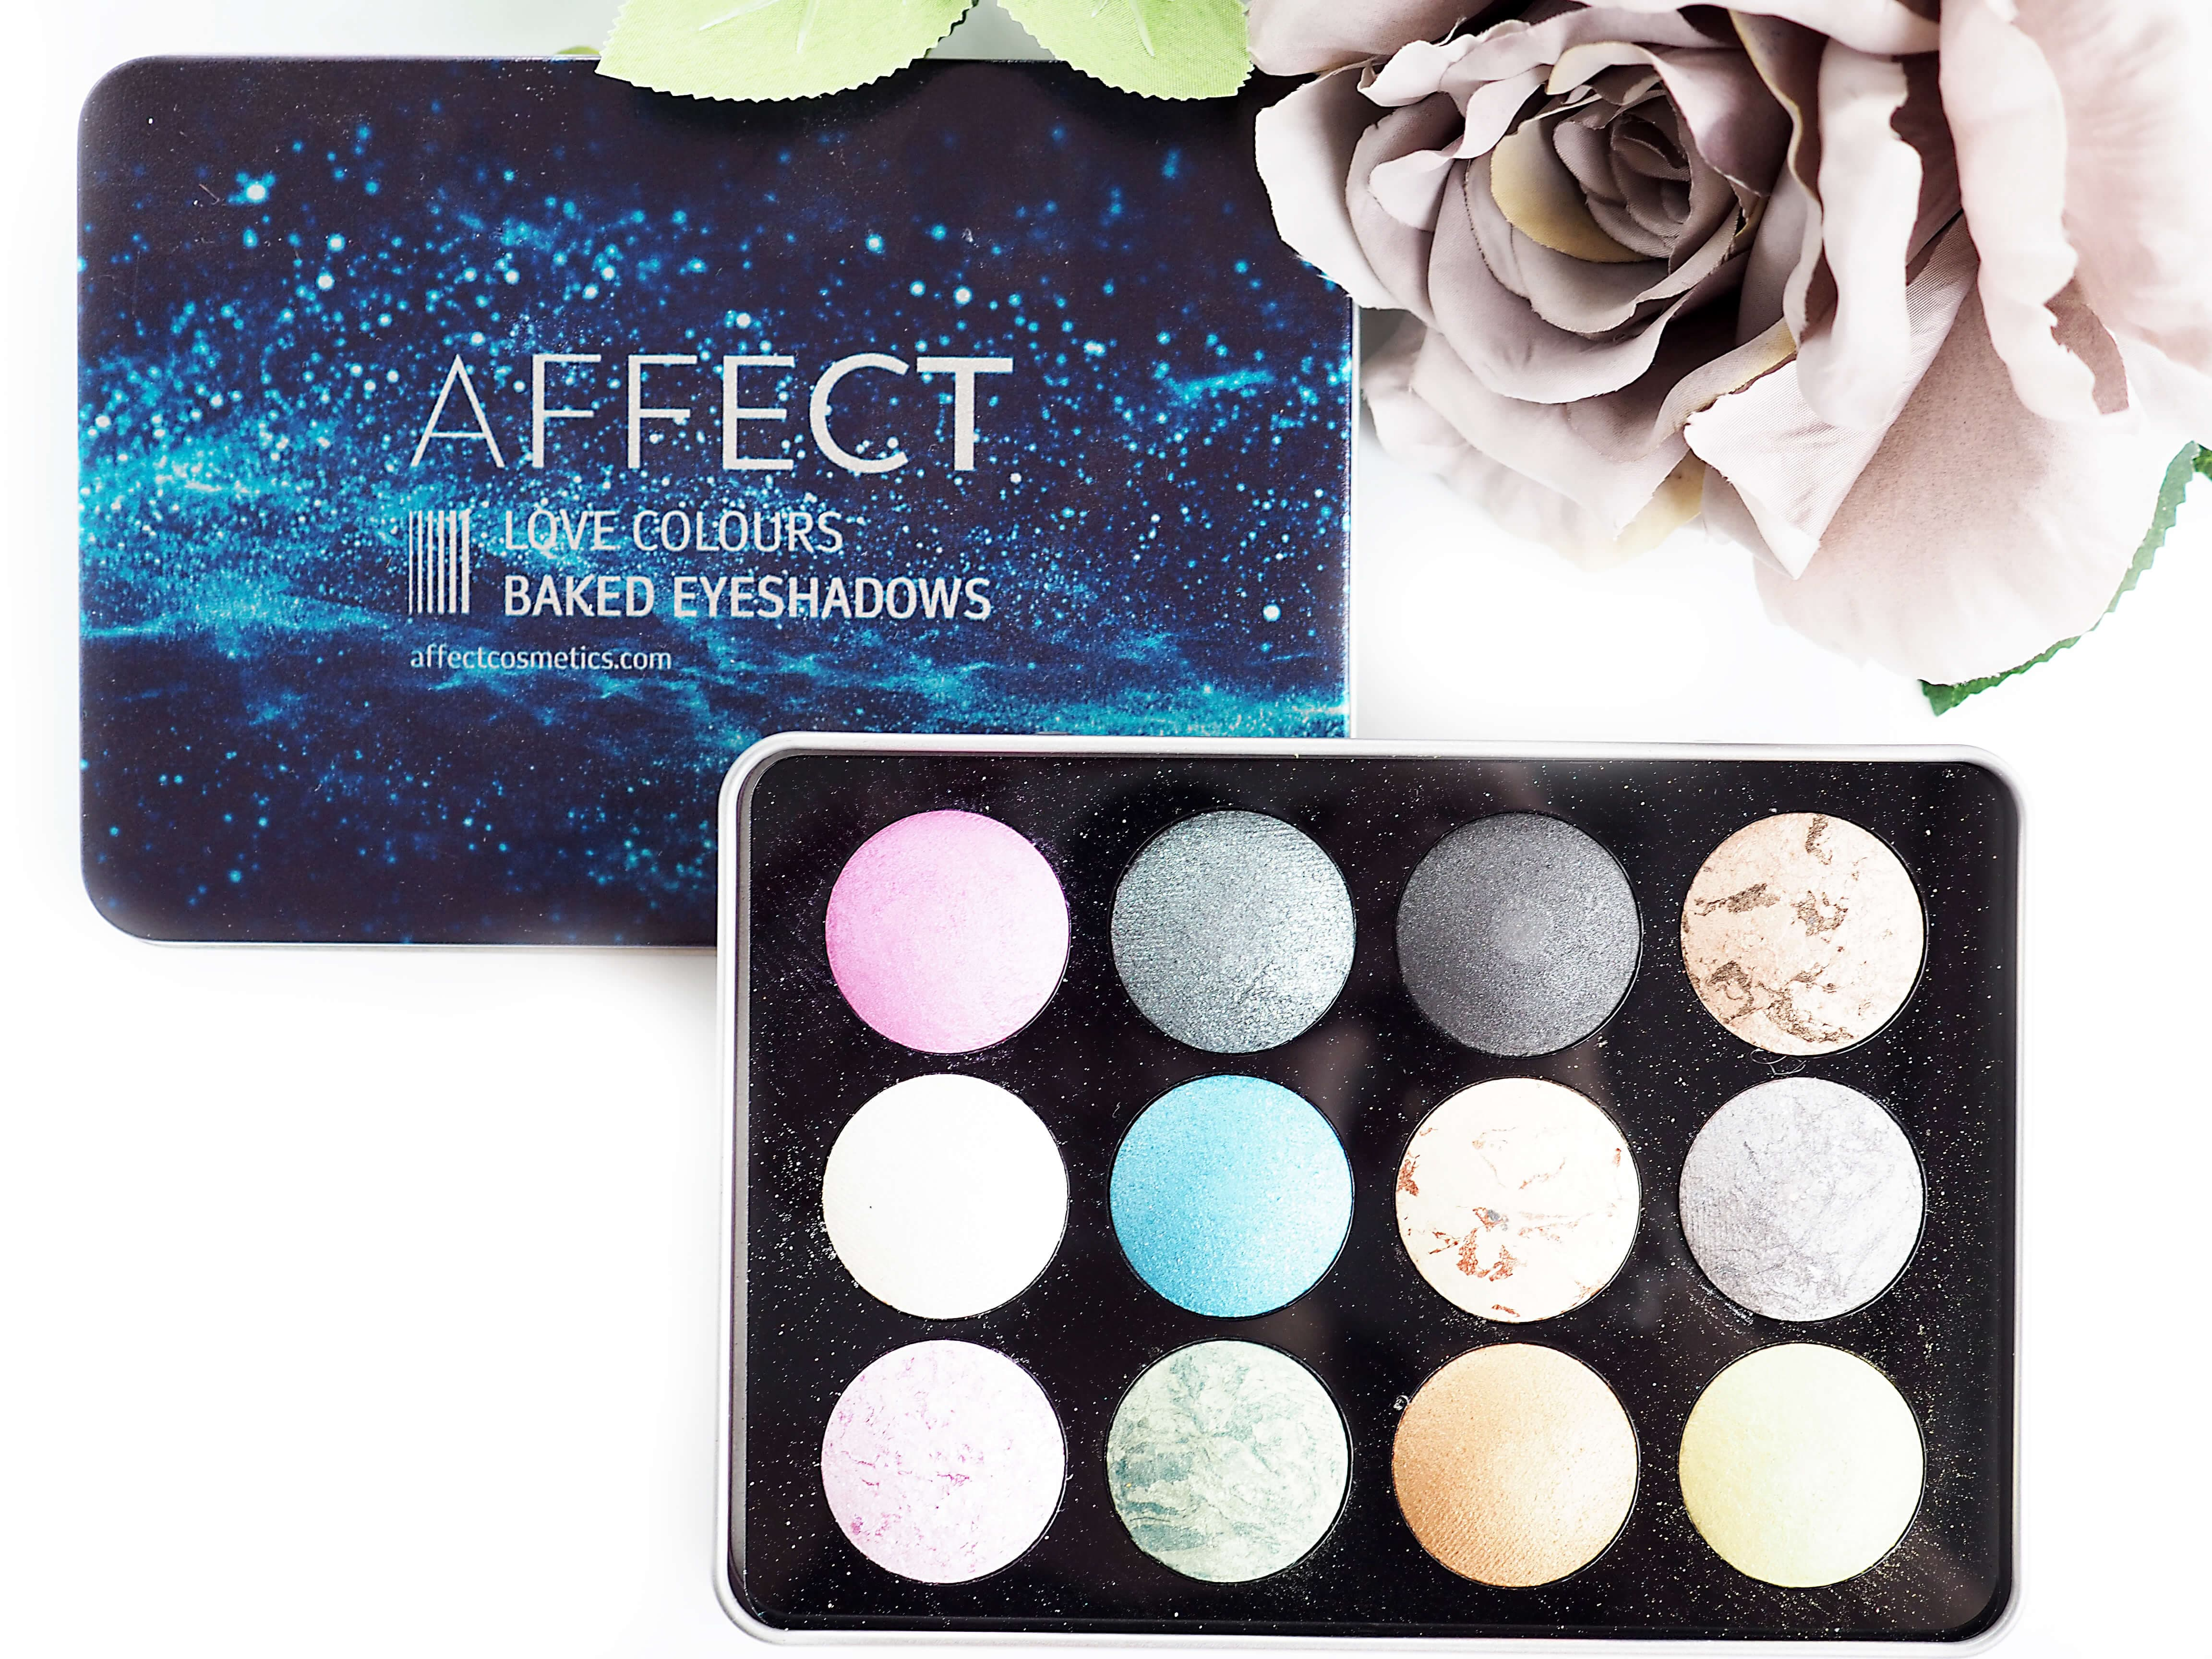 TEST AFFECT LOVE COLOURS BAKED EYESHADOWS